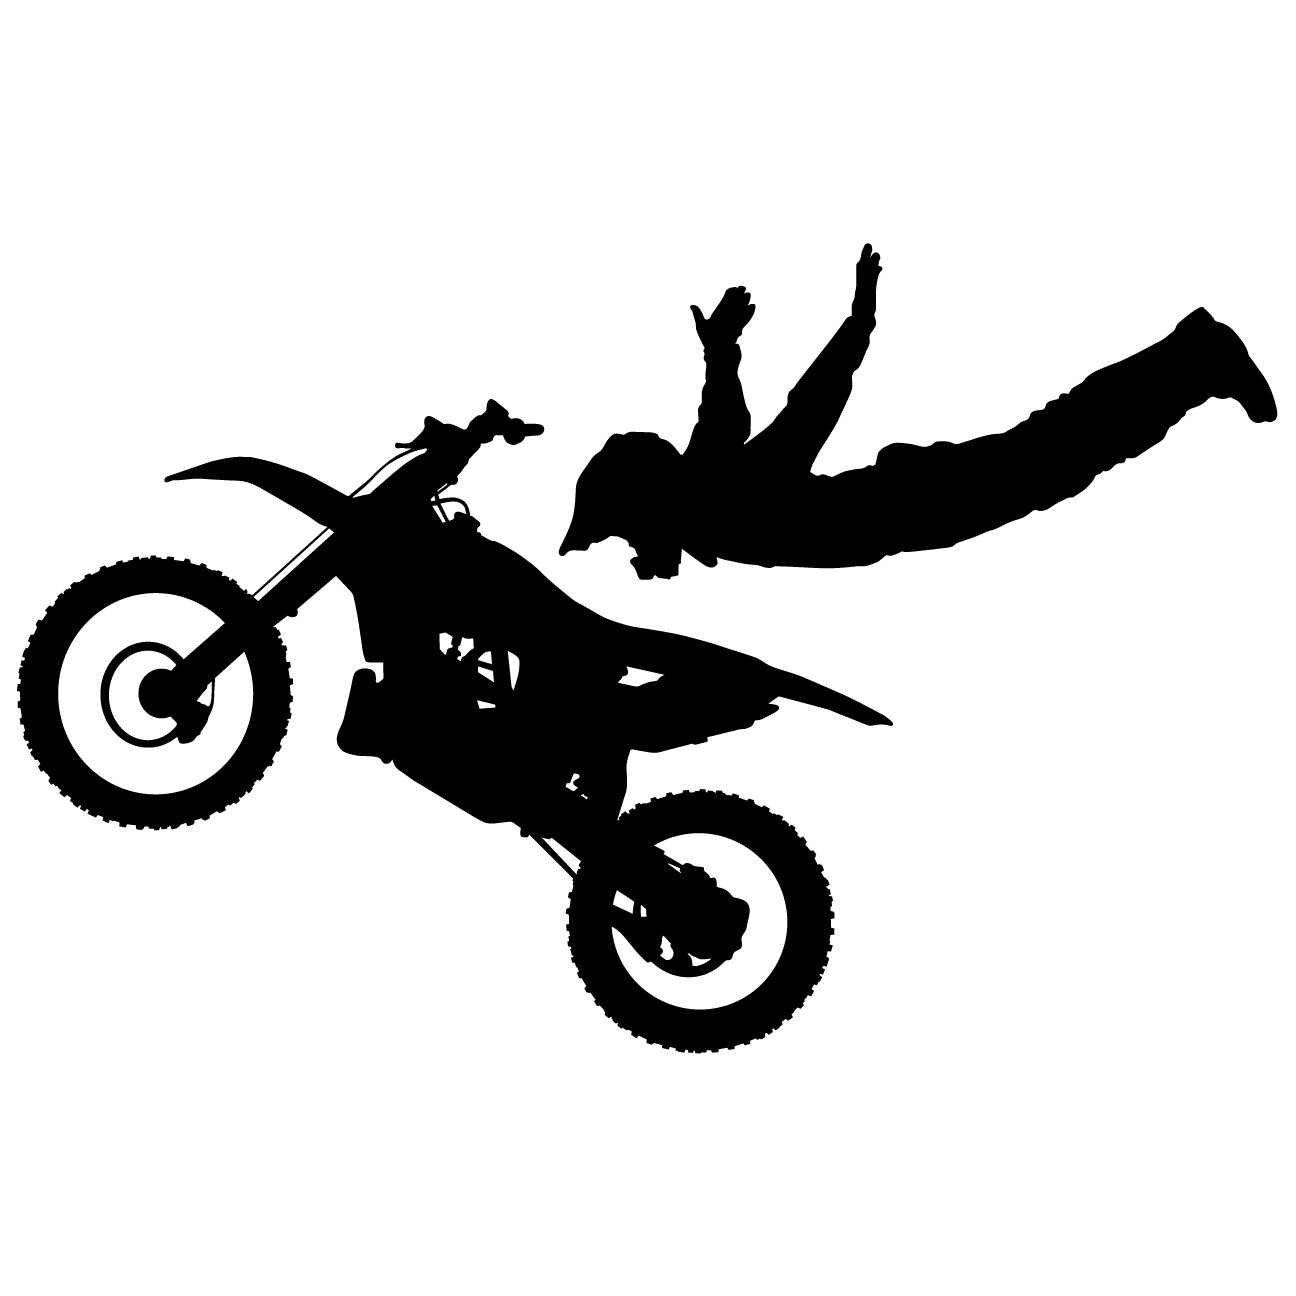 Amazon.com: Motocross Wall Decal Sticker 7   Decal Stickers And Mural For  Kids Boys Girls Room And Bedroom. Dirt Bike Wall Art For Home Decor And  Decoration ... Part 62